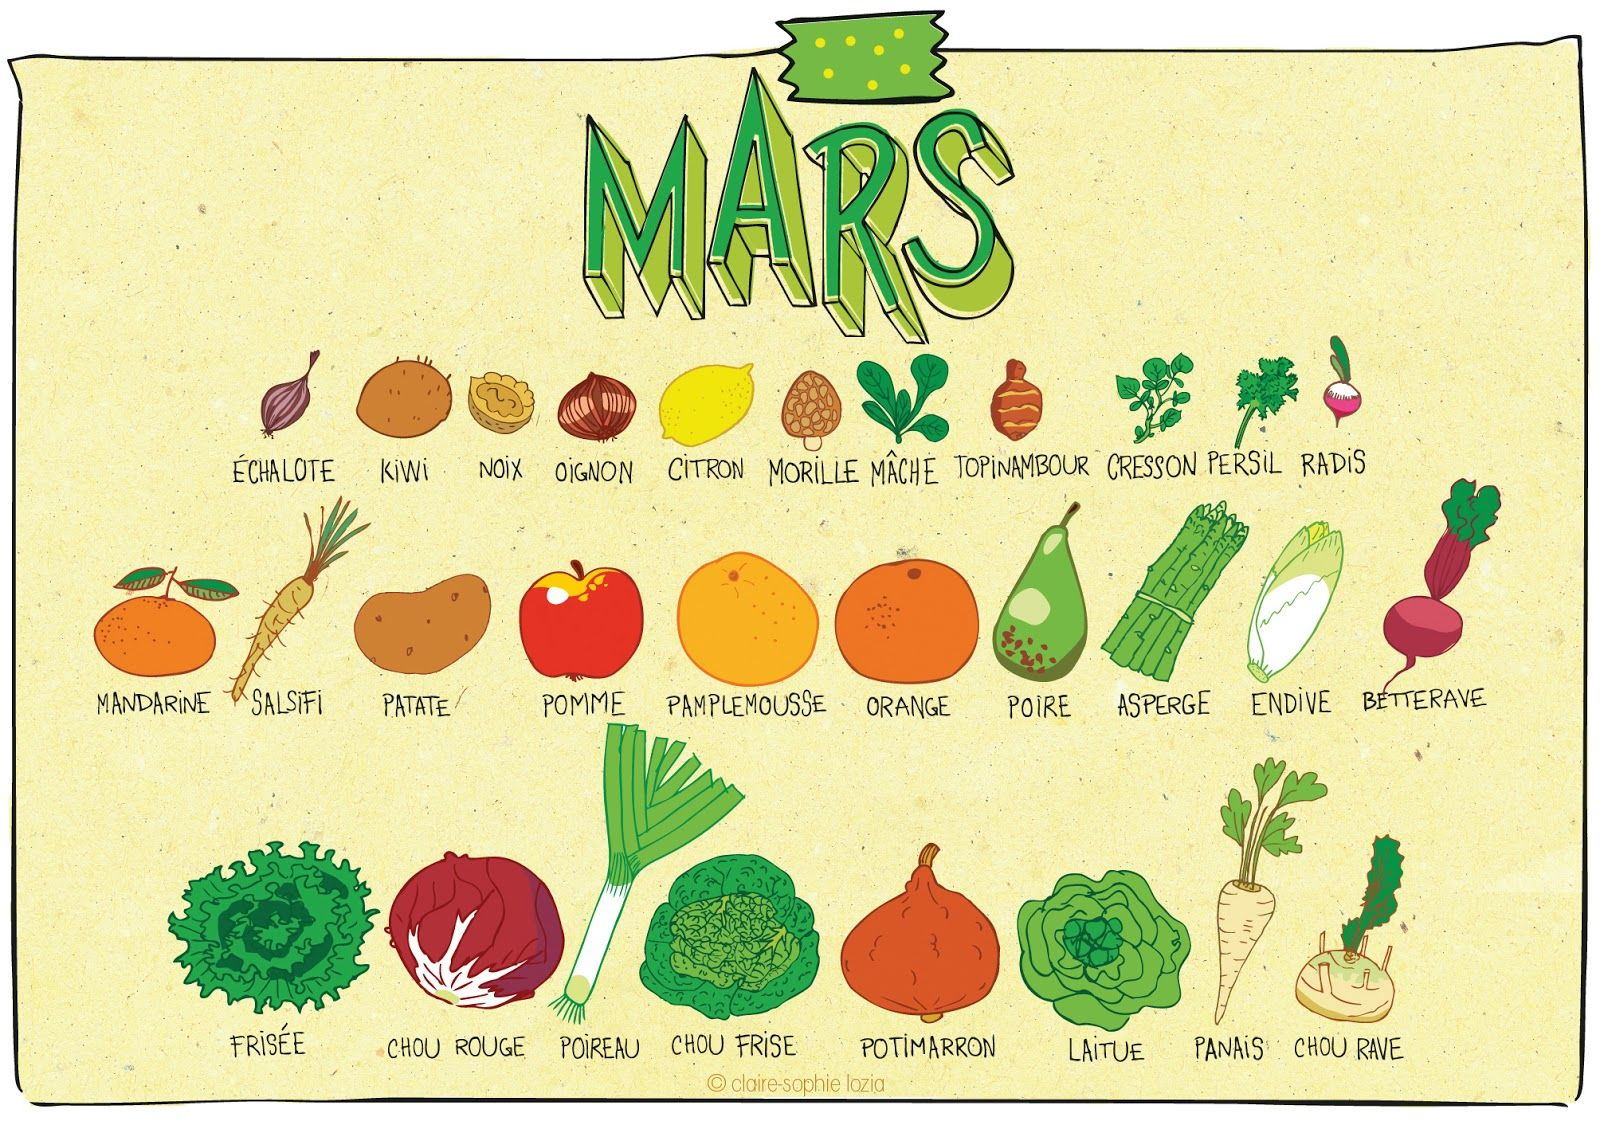 mars calendrier des fruits et l gumes fle lexique de la nourriture pinterest mars and fruit. Black Bedroom Furniture Sets. Home Design Ideas